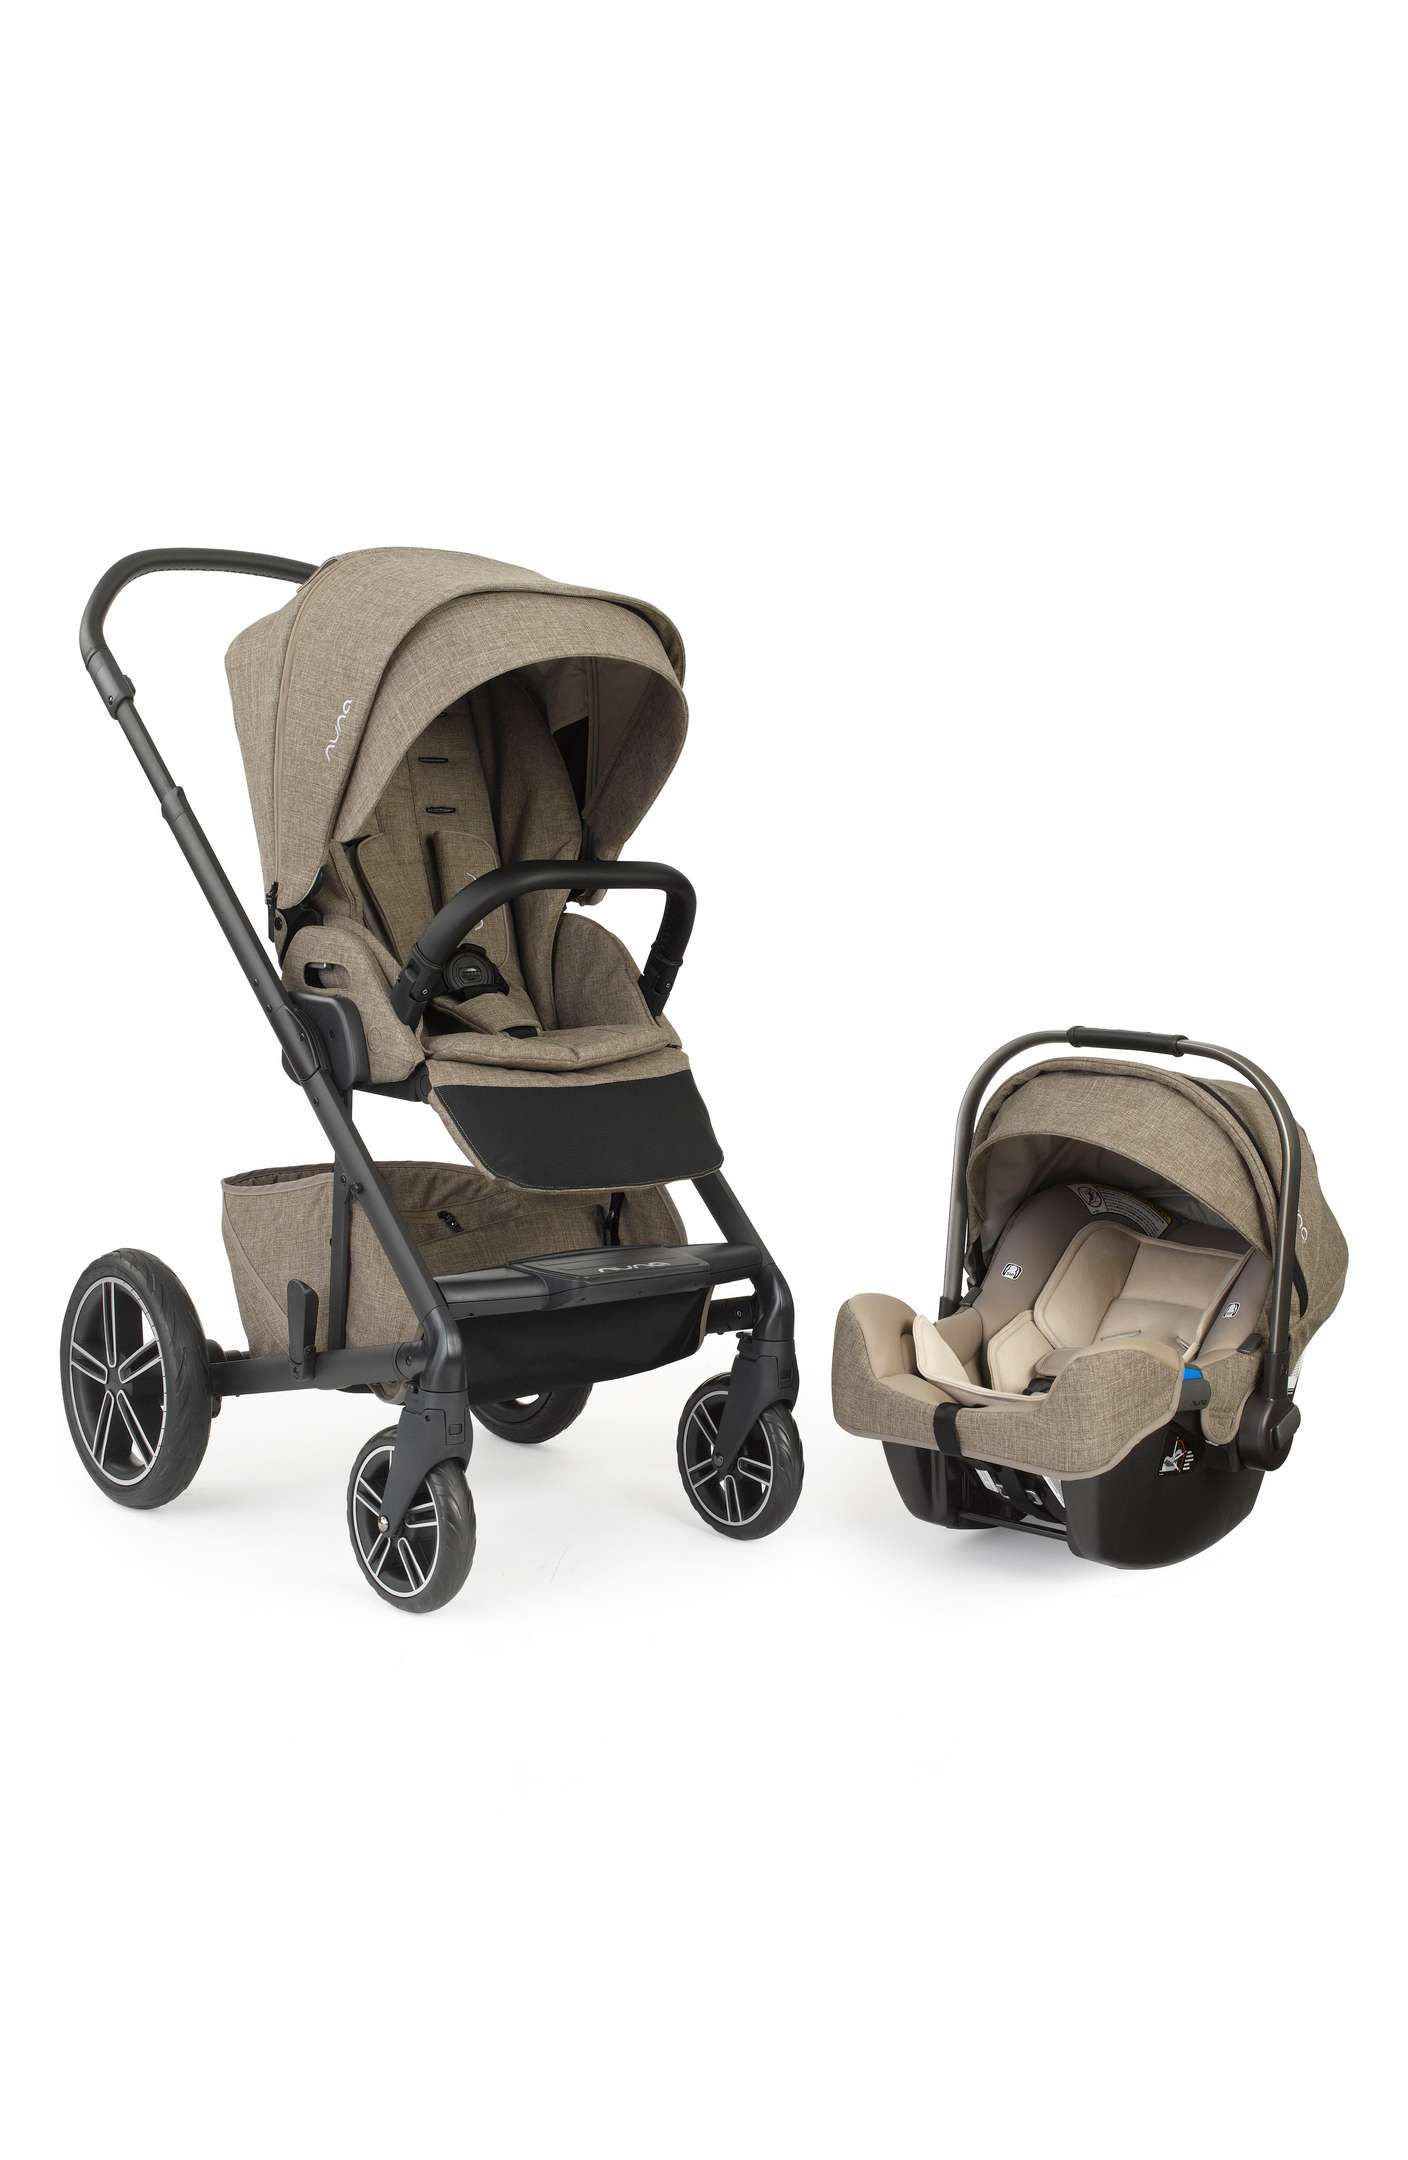 Baby Strollers Baby car seats, Car seat, stroller, Car seats